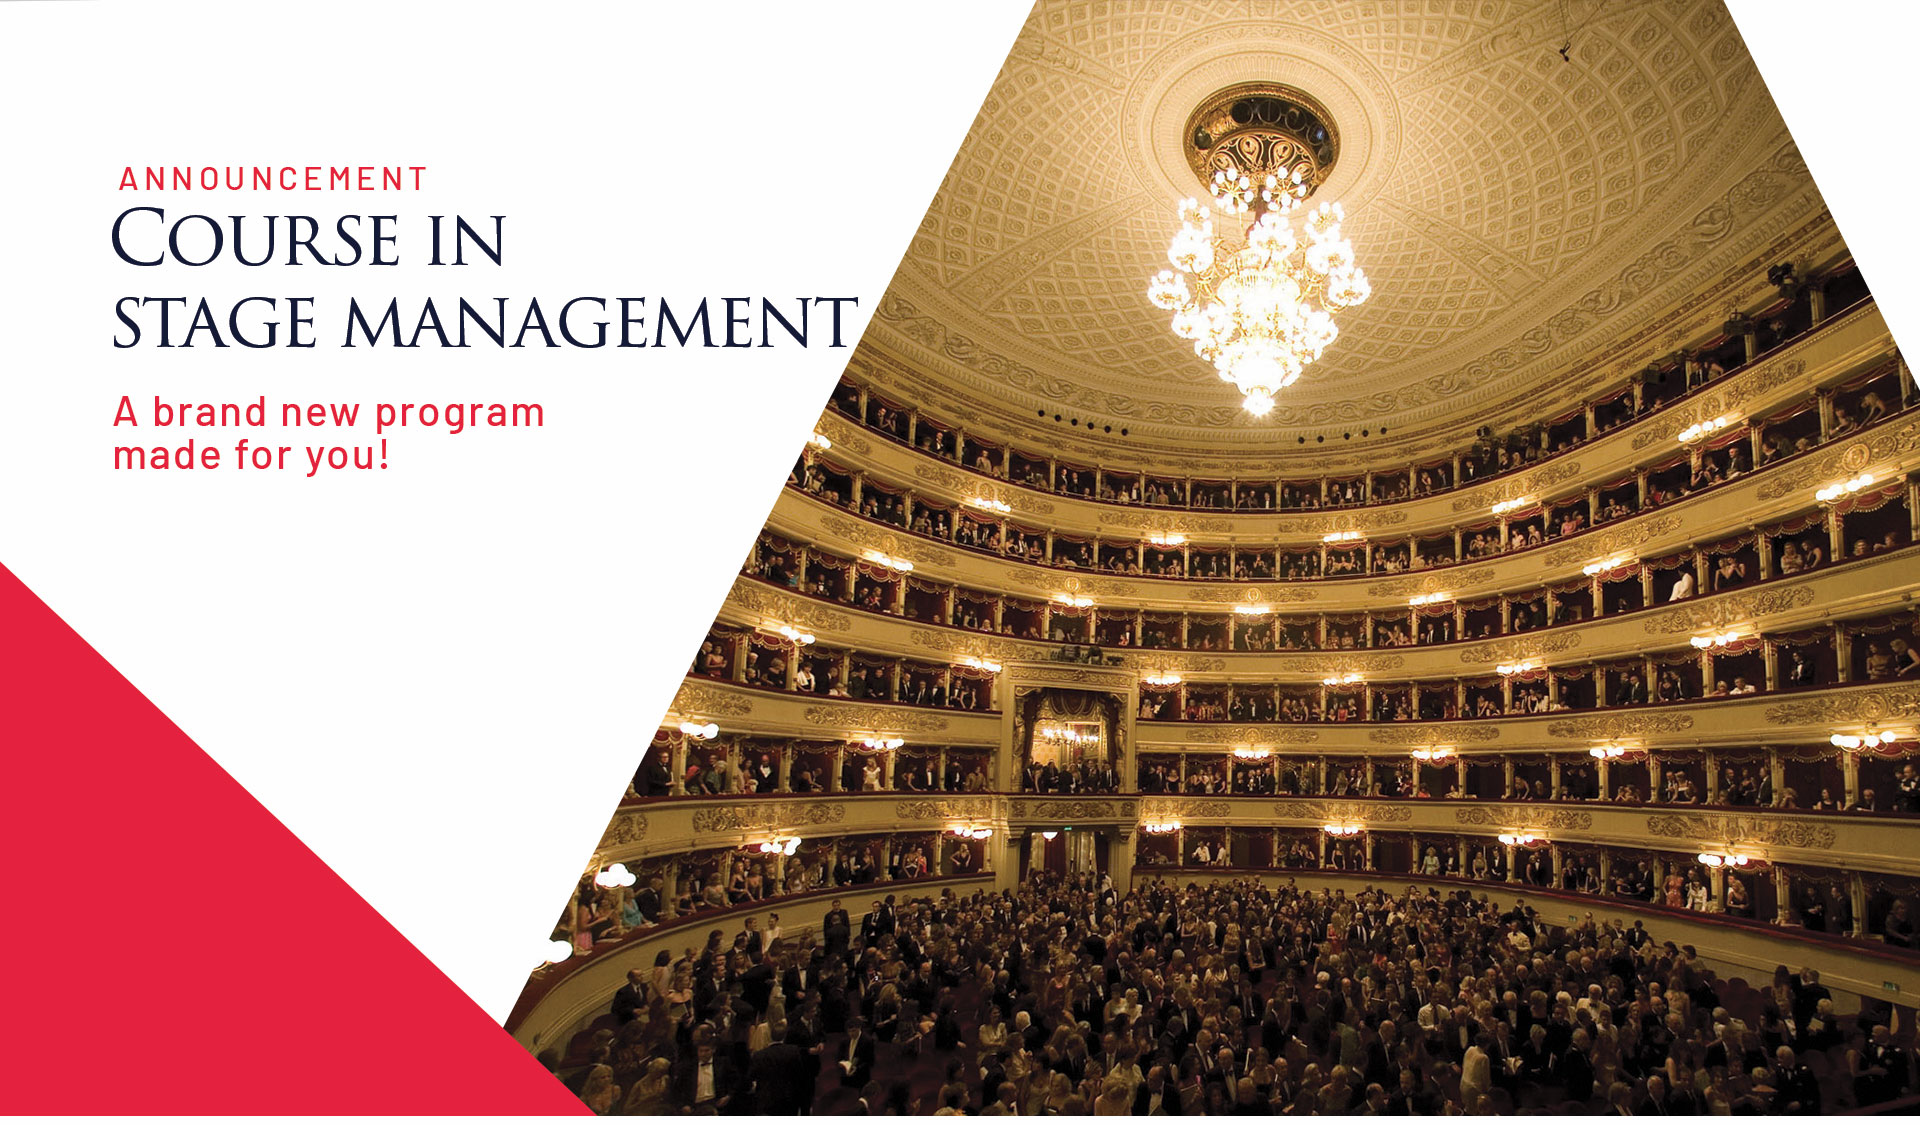 course in stage management